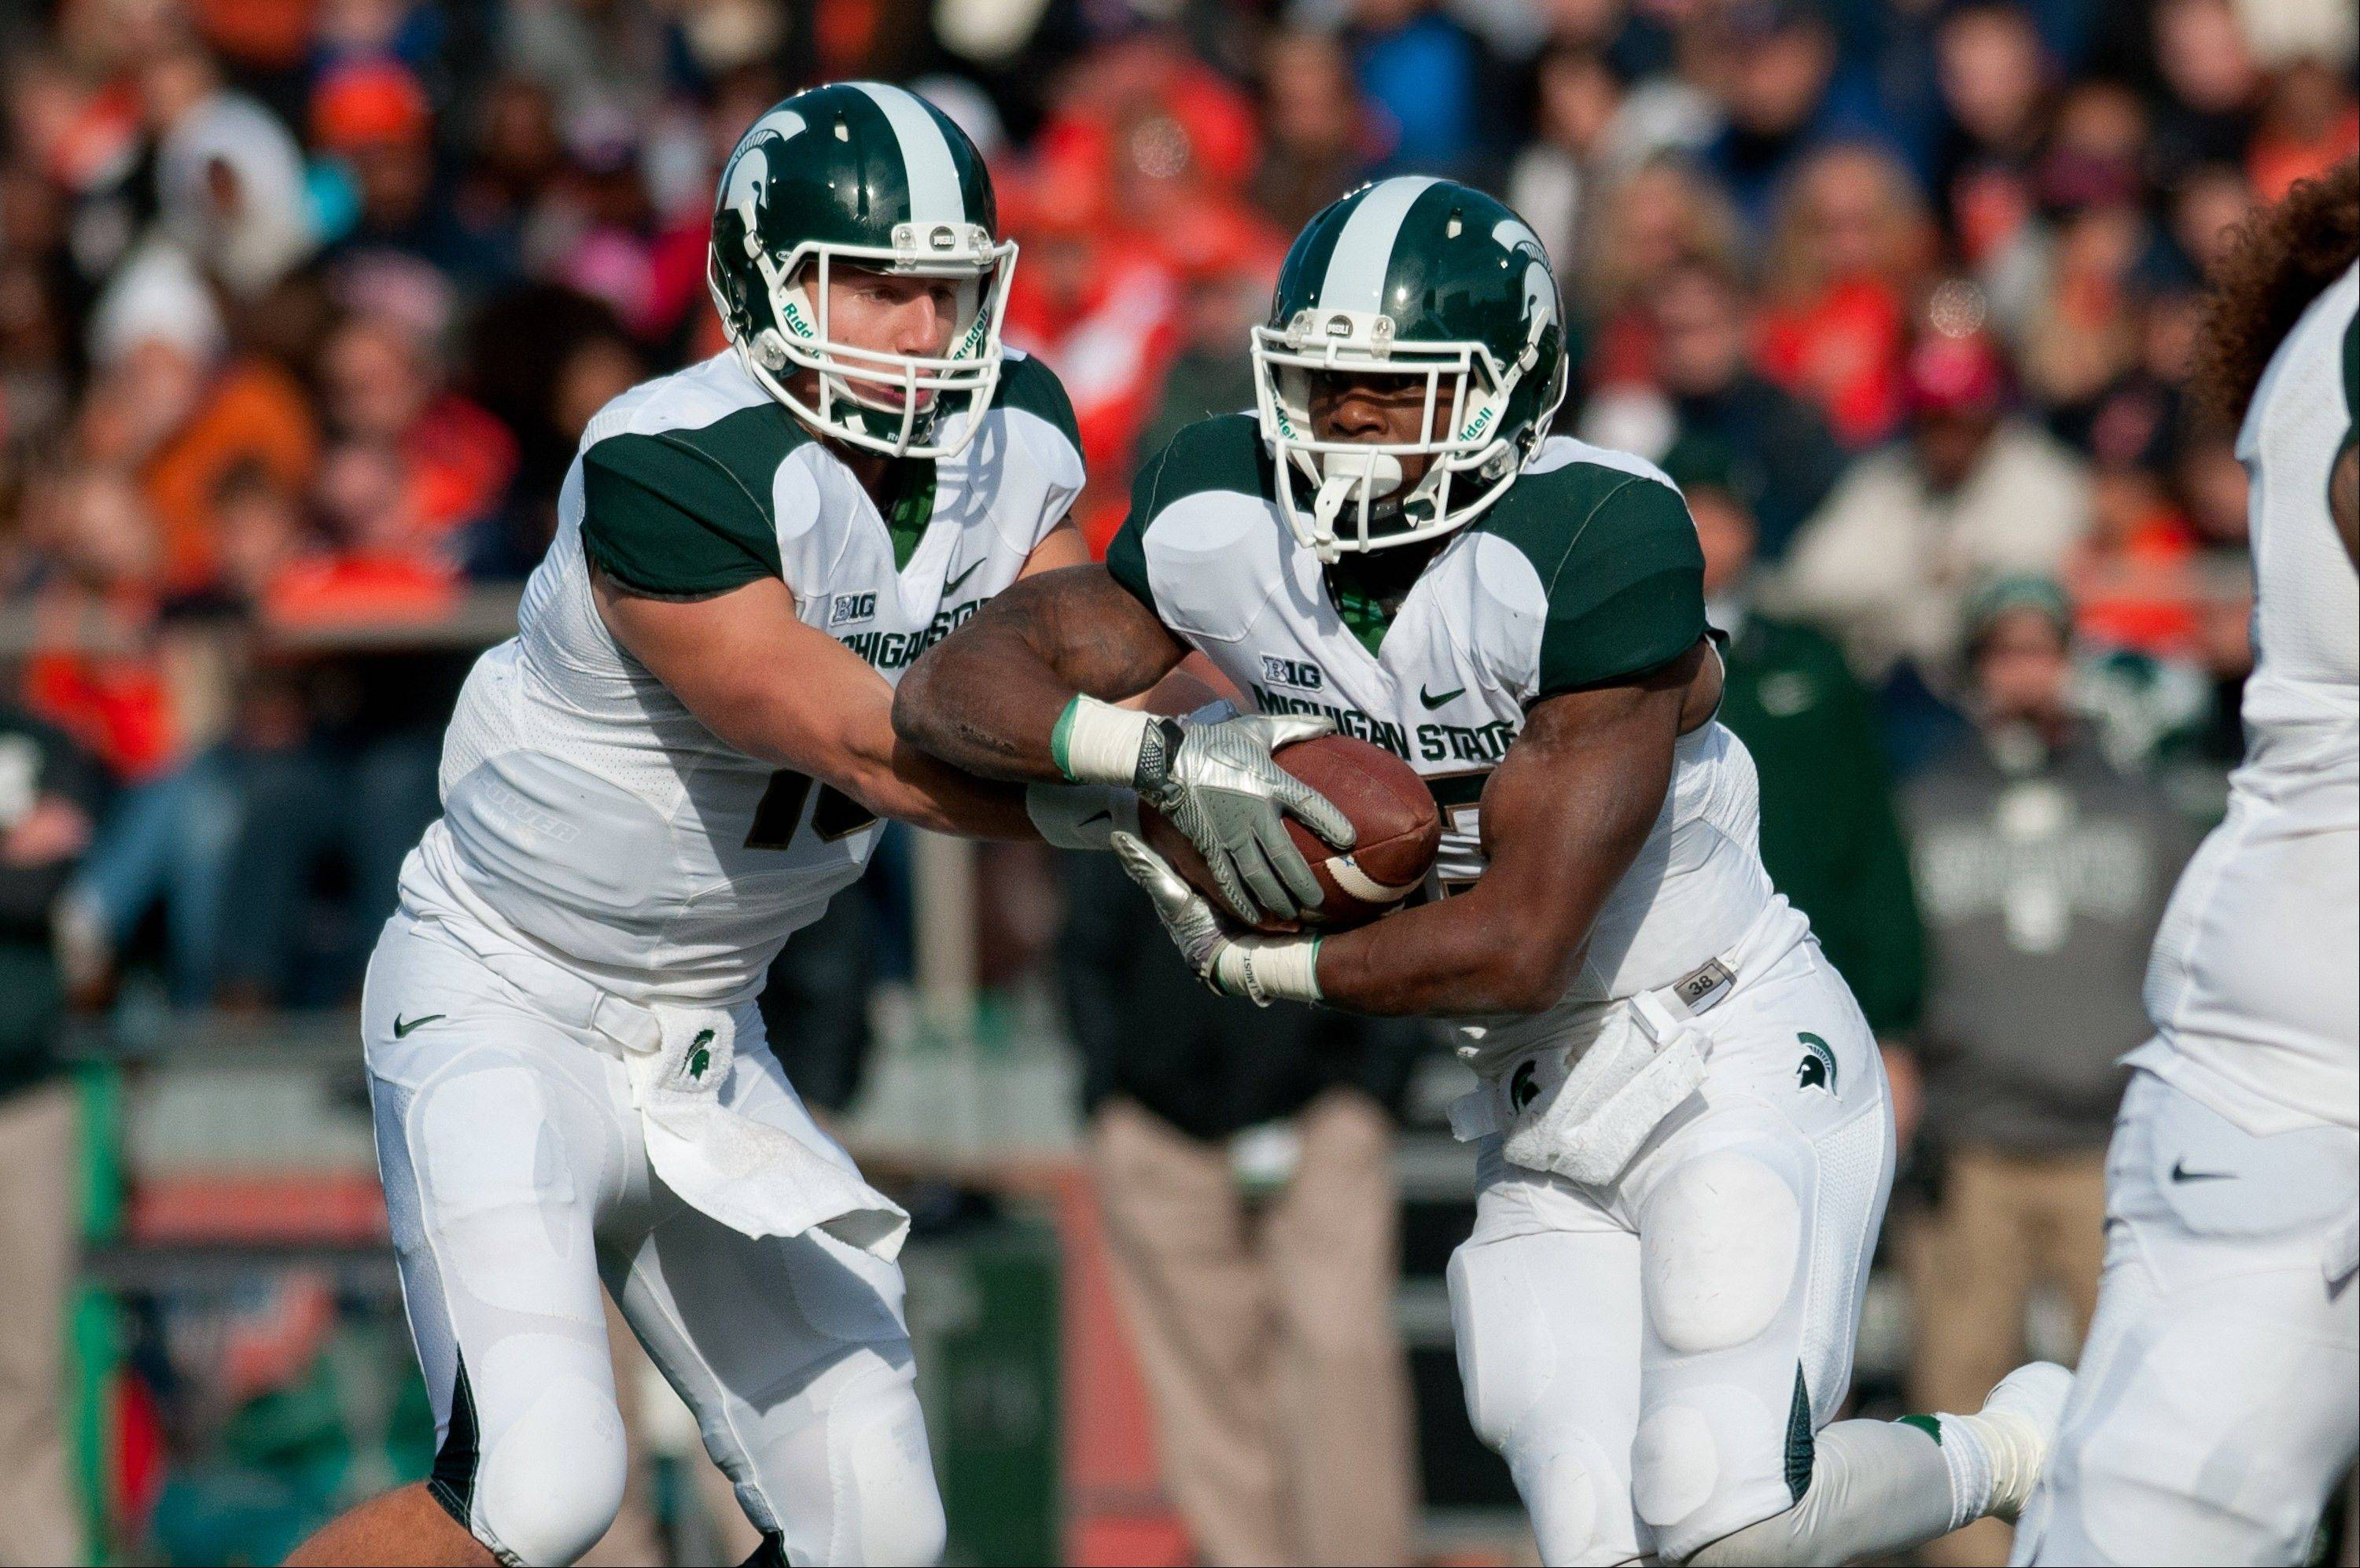 Michigan State quarterback Connor Cook (18) hands the ball off to running back Jeremy Langford (33) against Illinois during the first quarter of an NCAA college football game Saturday at Memorial Stadium in Champaign.